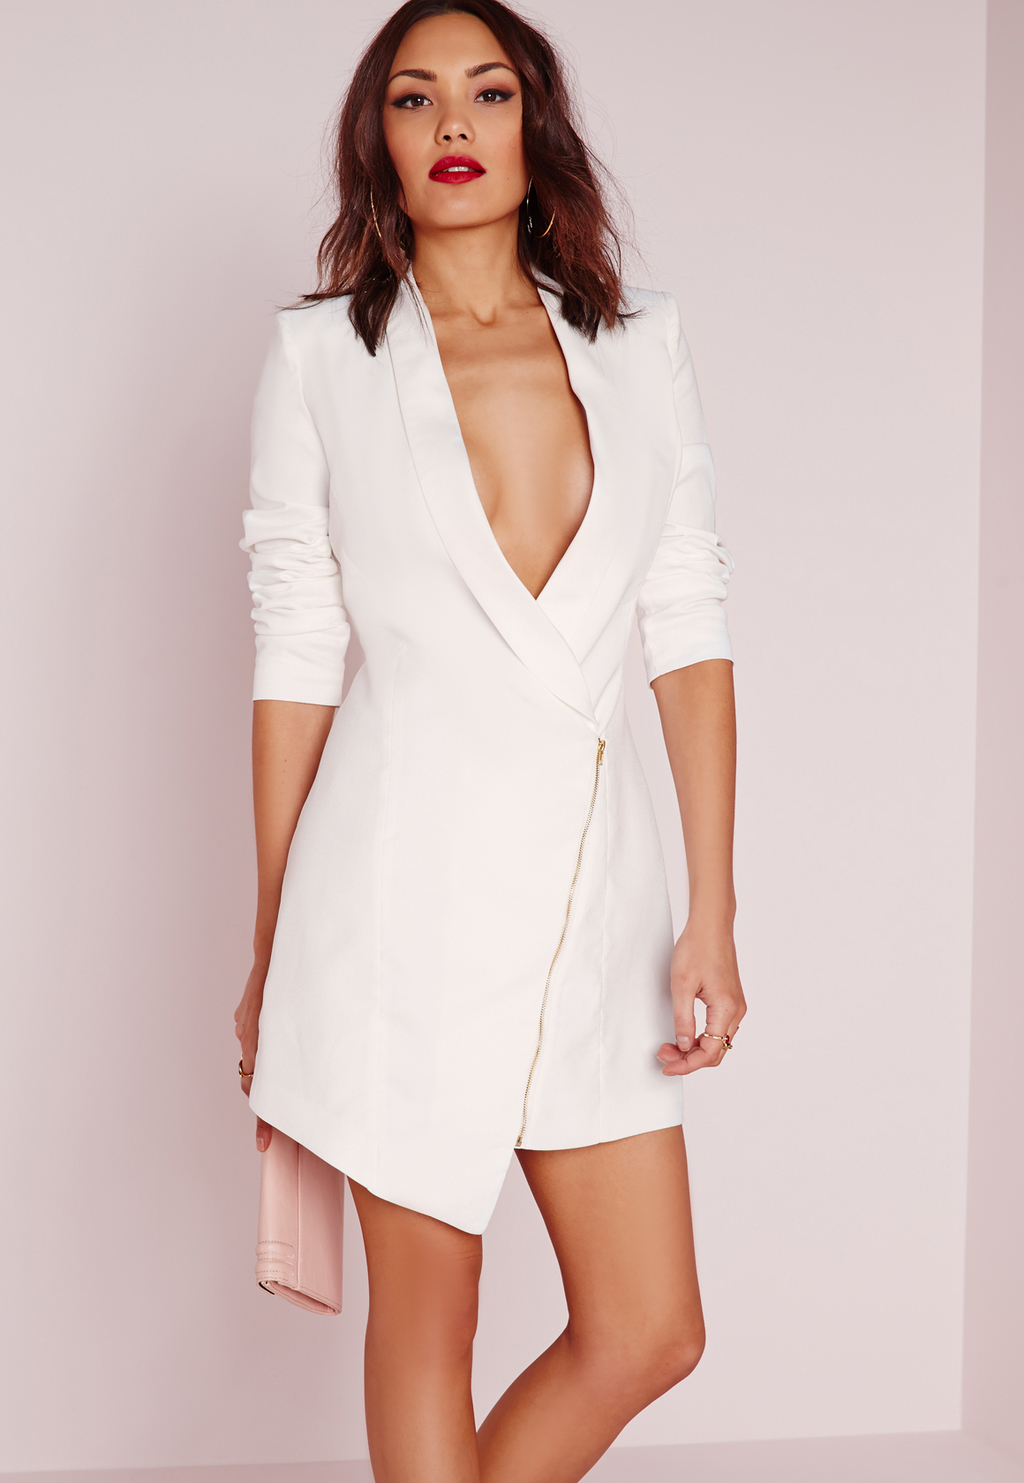 Long Sleeve Zip Detail Blazer Dress White, White - style: shift; length: mid thigh; neckline: plunge; fit: tailored/fitted; pattern: plain; predominant colour: white; occasions: evening; fibres: polyester/polyamide - 100%; sleeve length: 3/4 length; sleeve style: standard; pattern type: fabric; texture group: other - light to midweight; season: s/s 2016; wardrobe: event